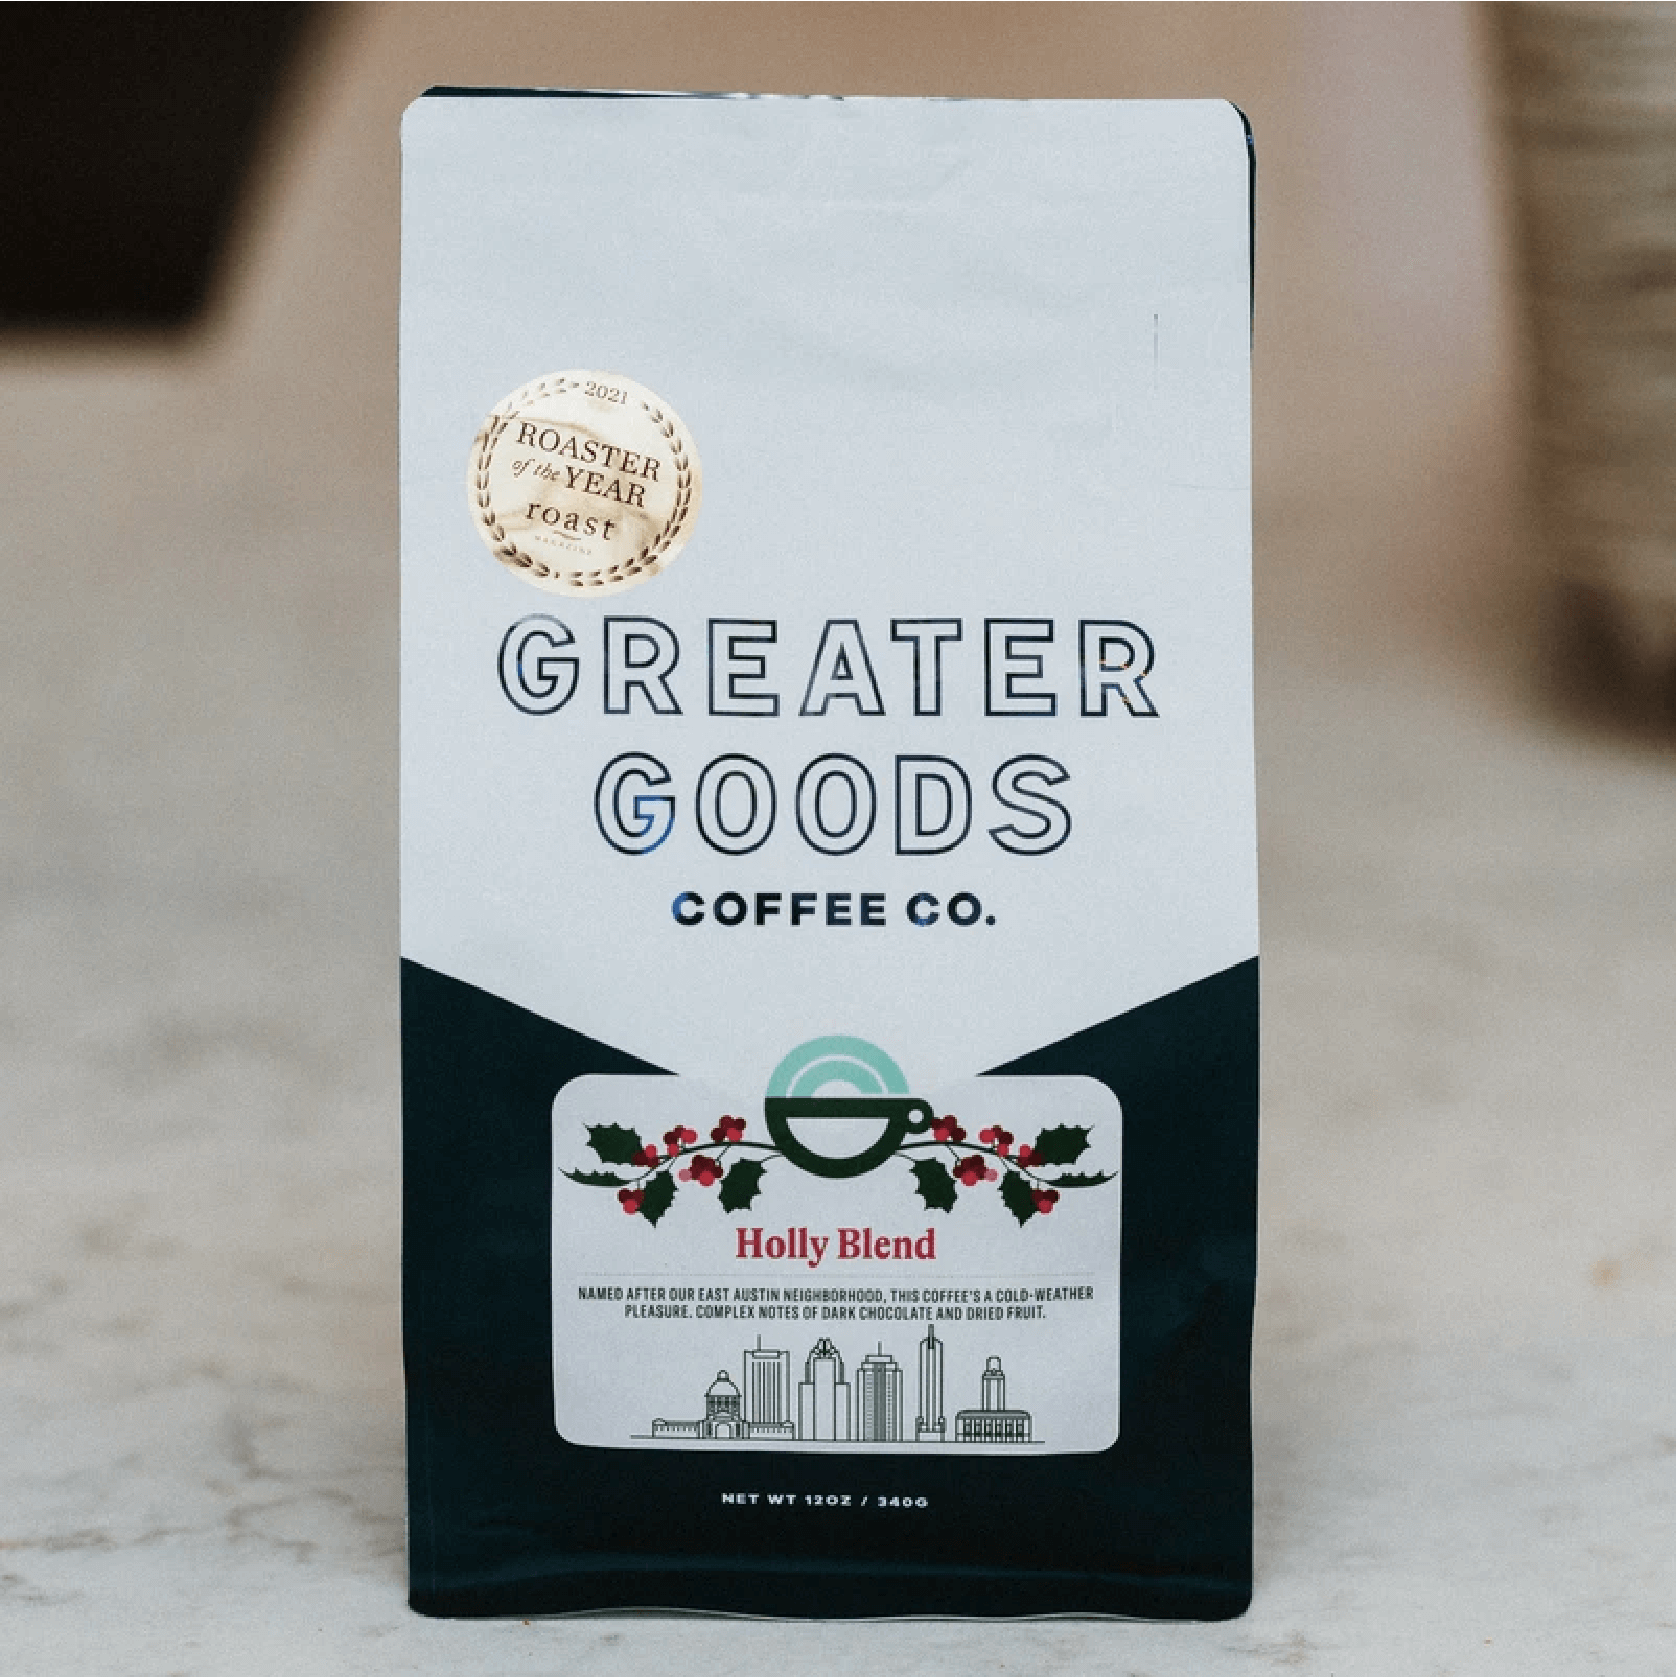 Holly Blend from Greater Goods Coffee Co.